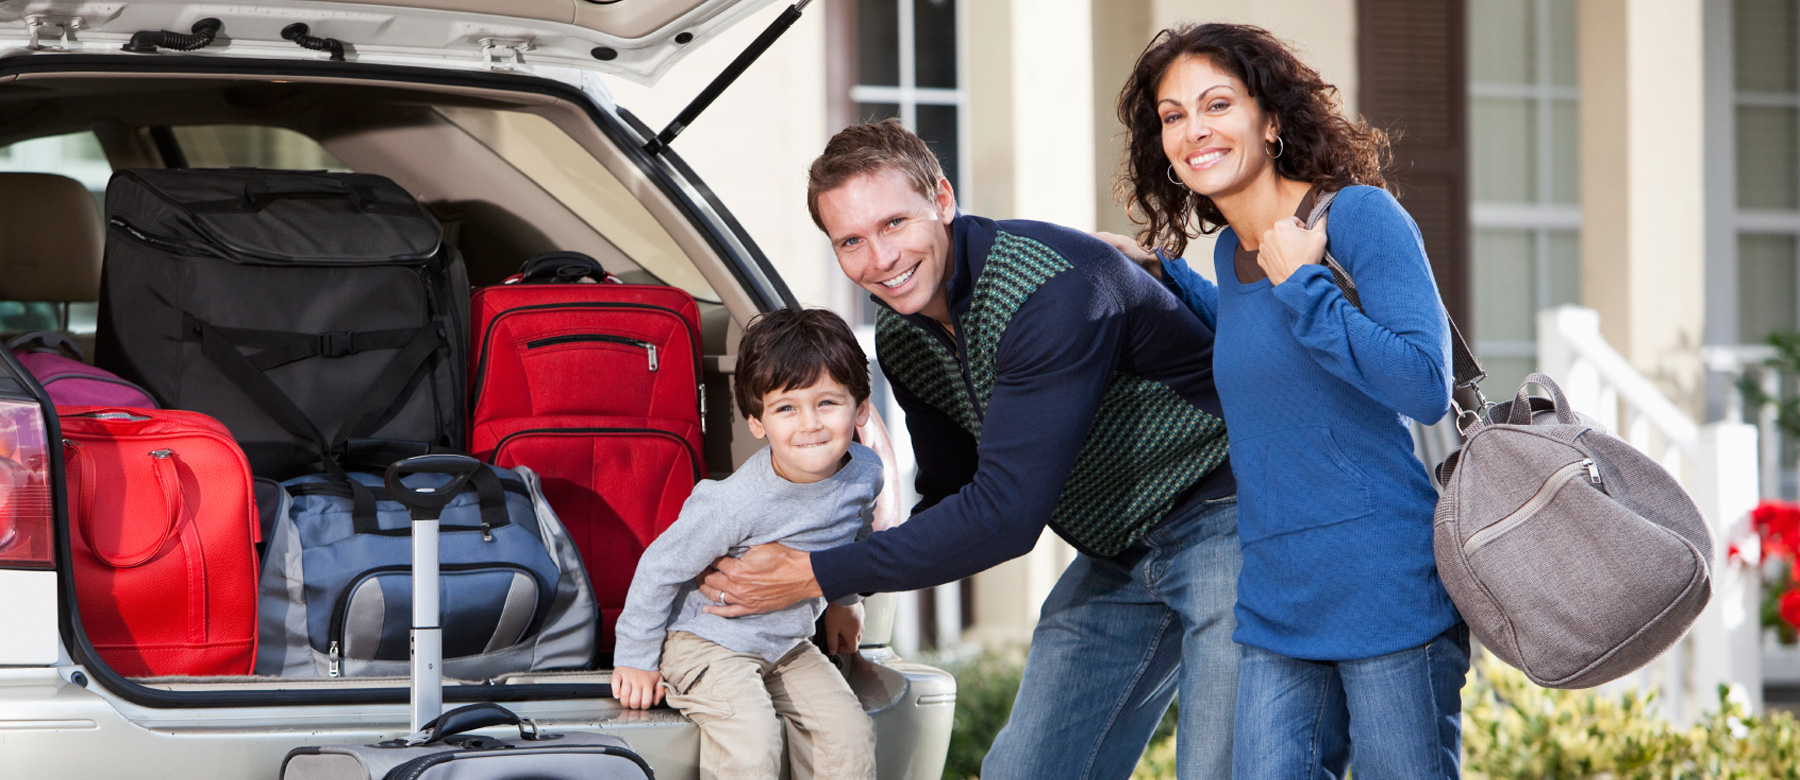 5 things you need for a family car. Black Bedroom Furniture Sets. Home Design Ideas